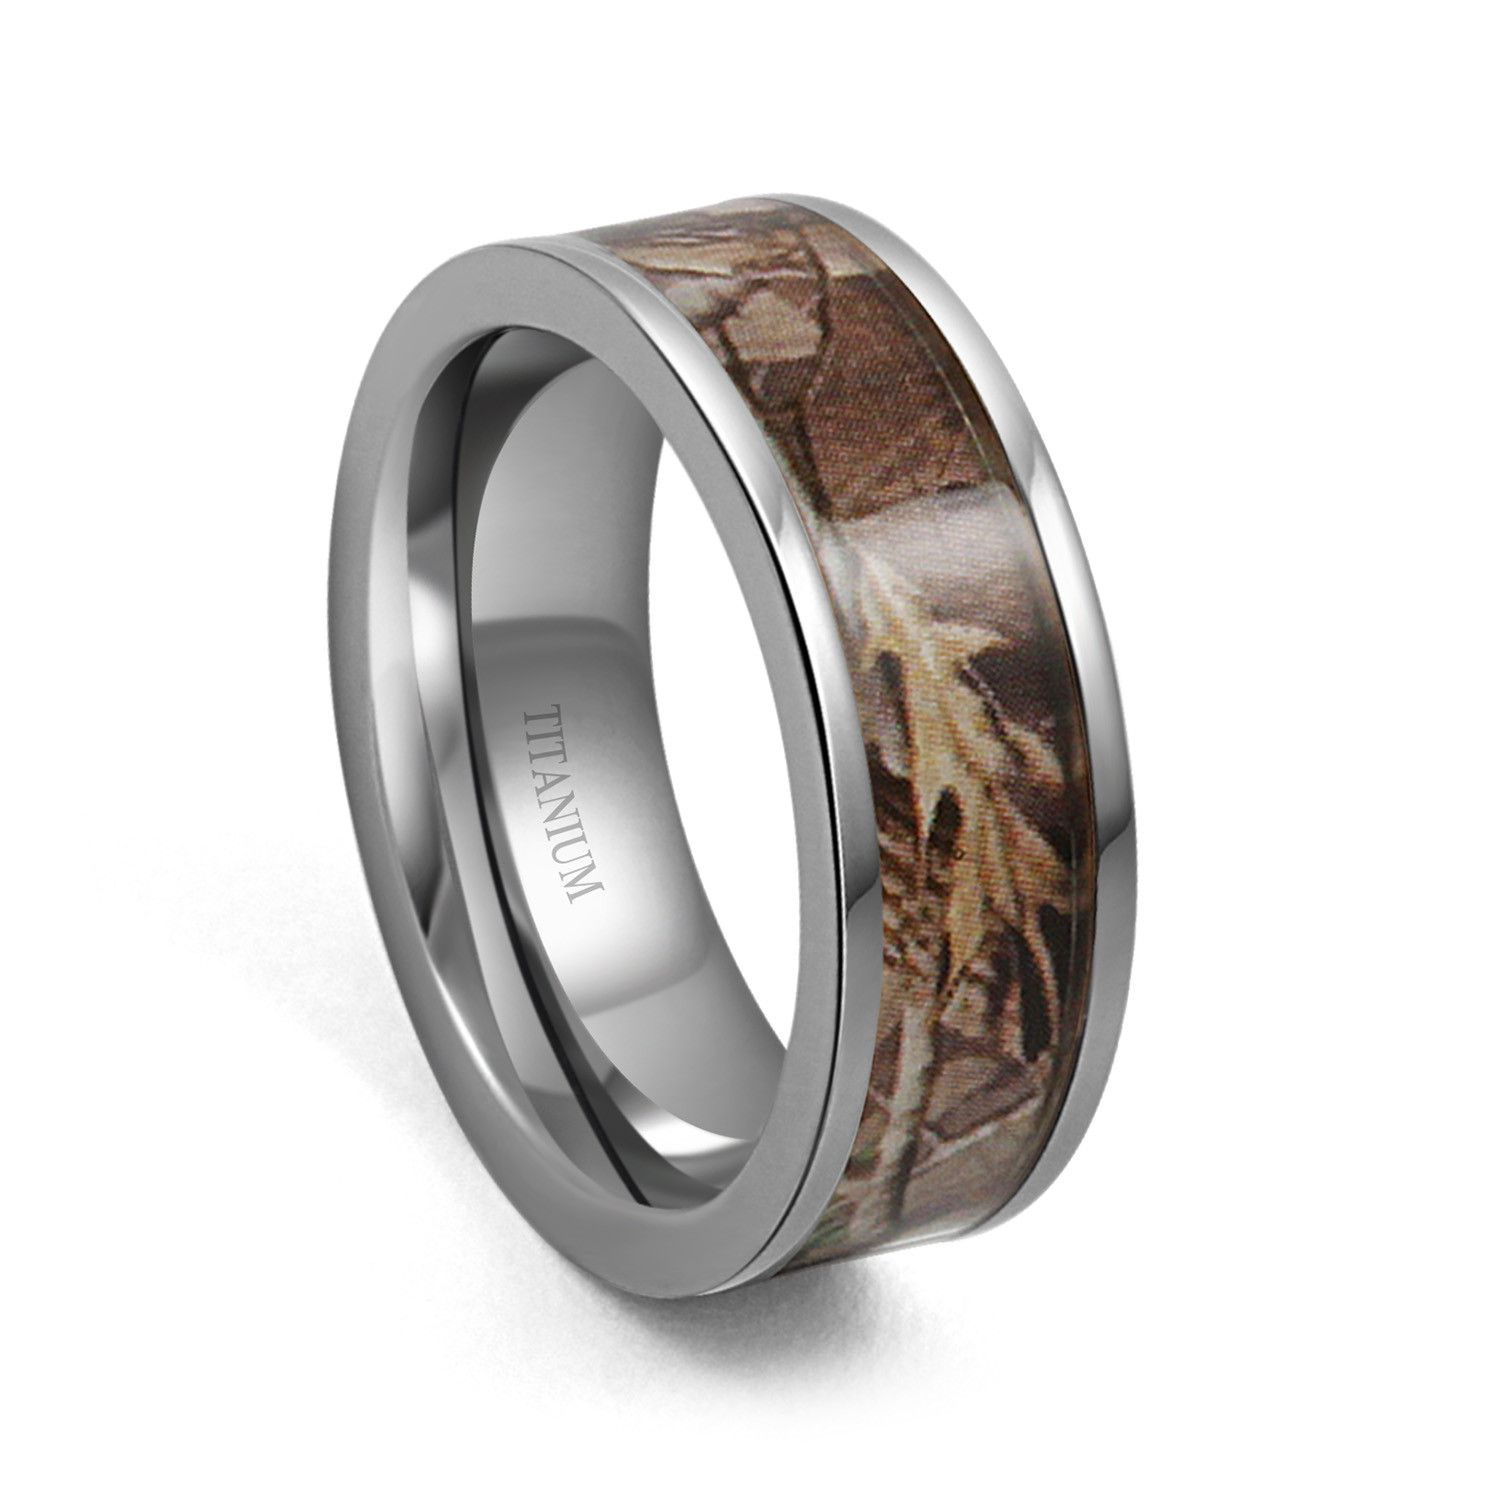 7mm Camo Hunting Camouflage Wedding Band Camouflage Wedding Band